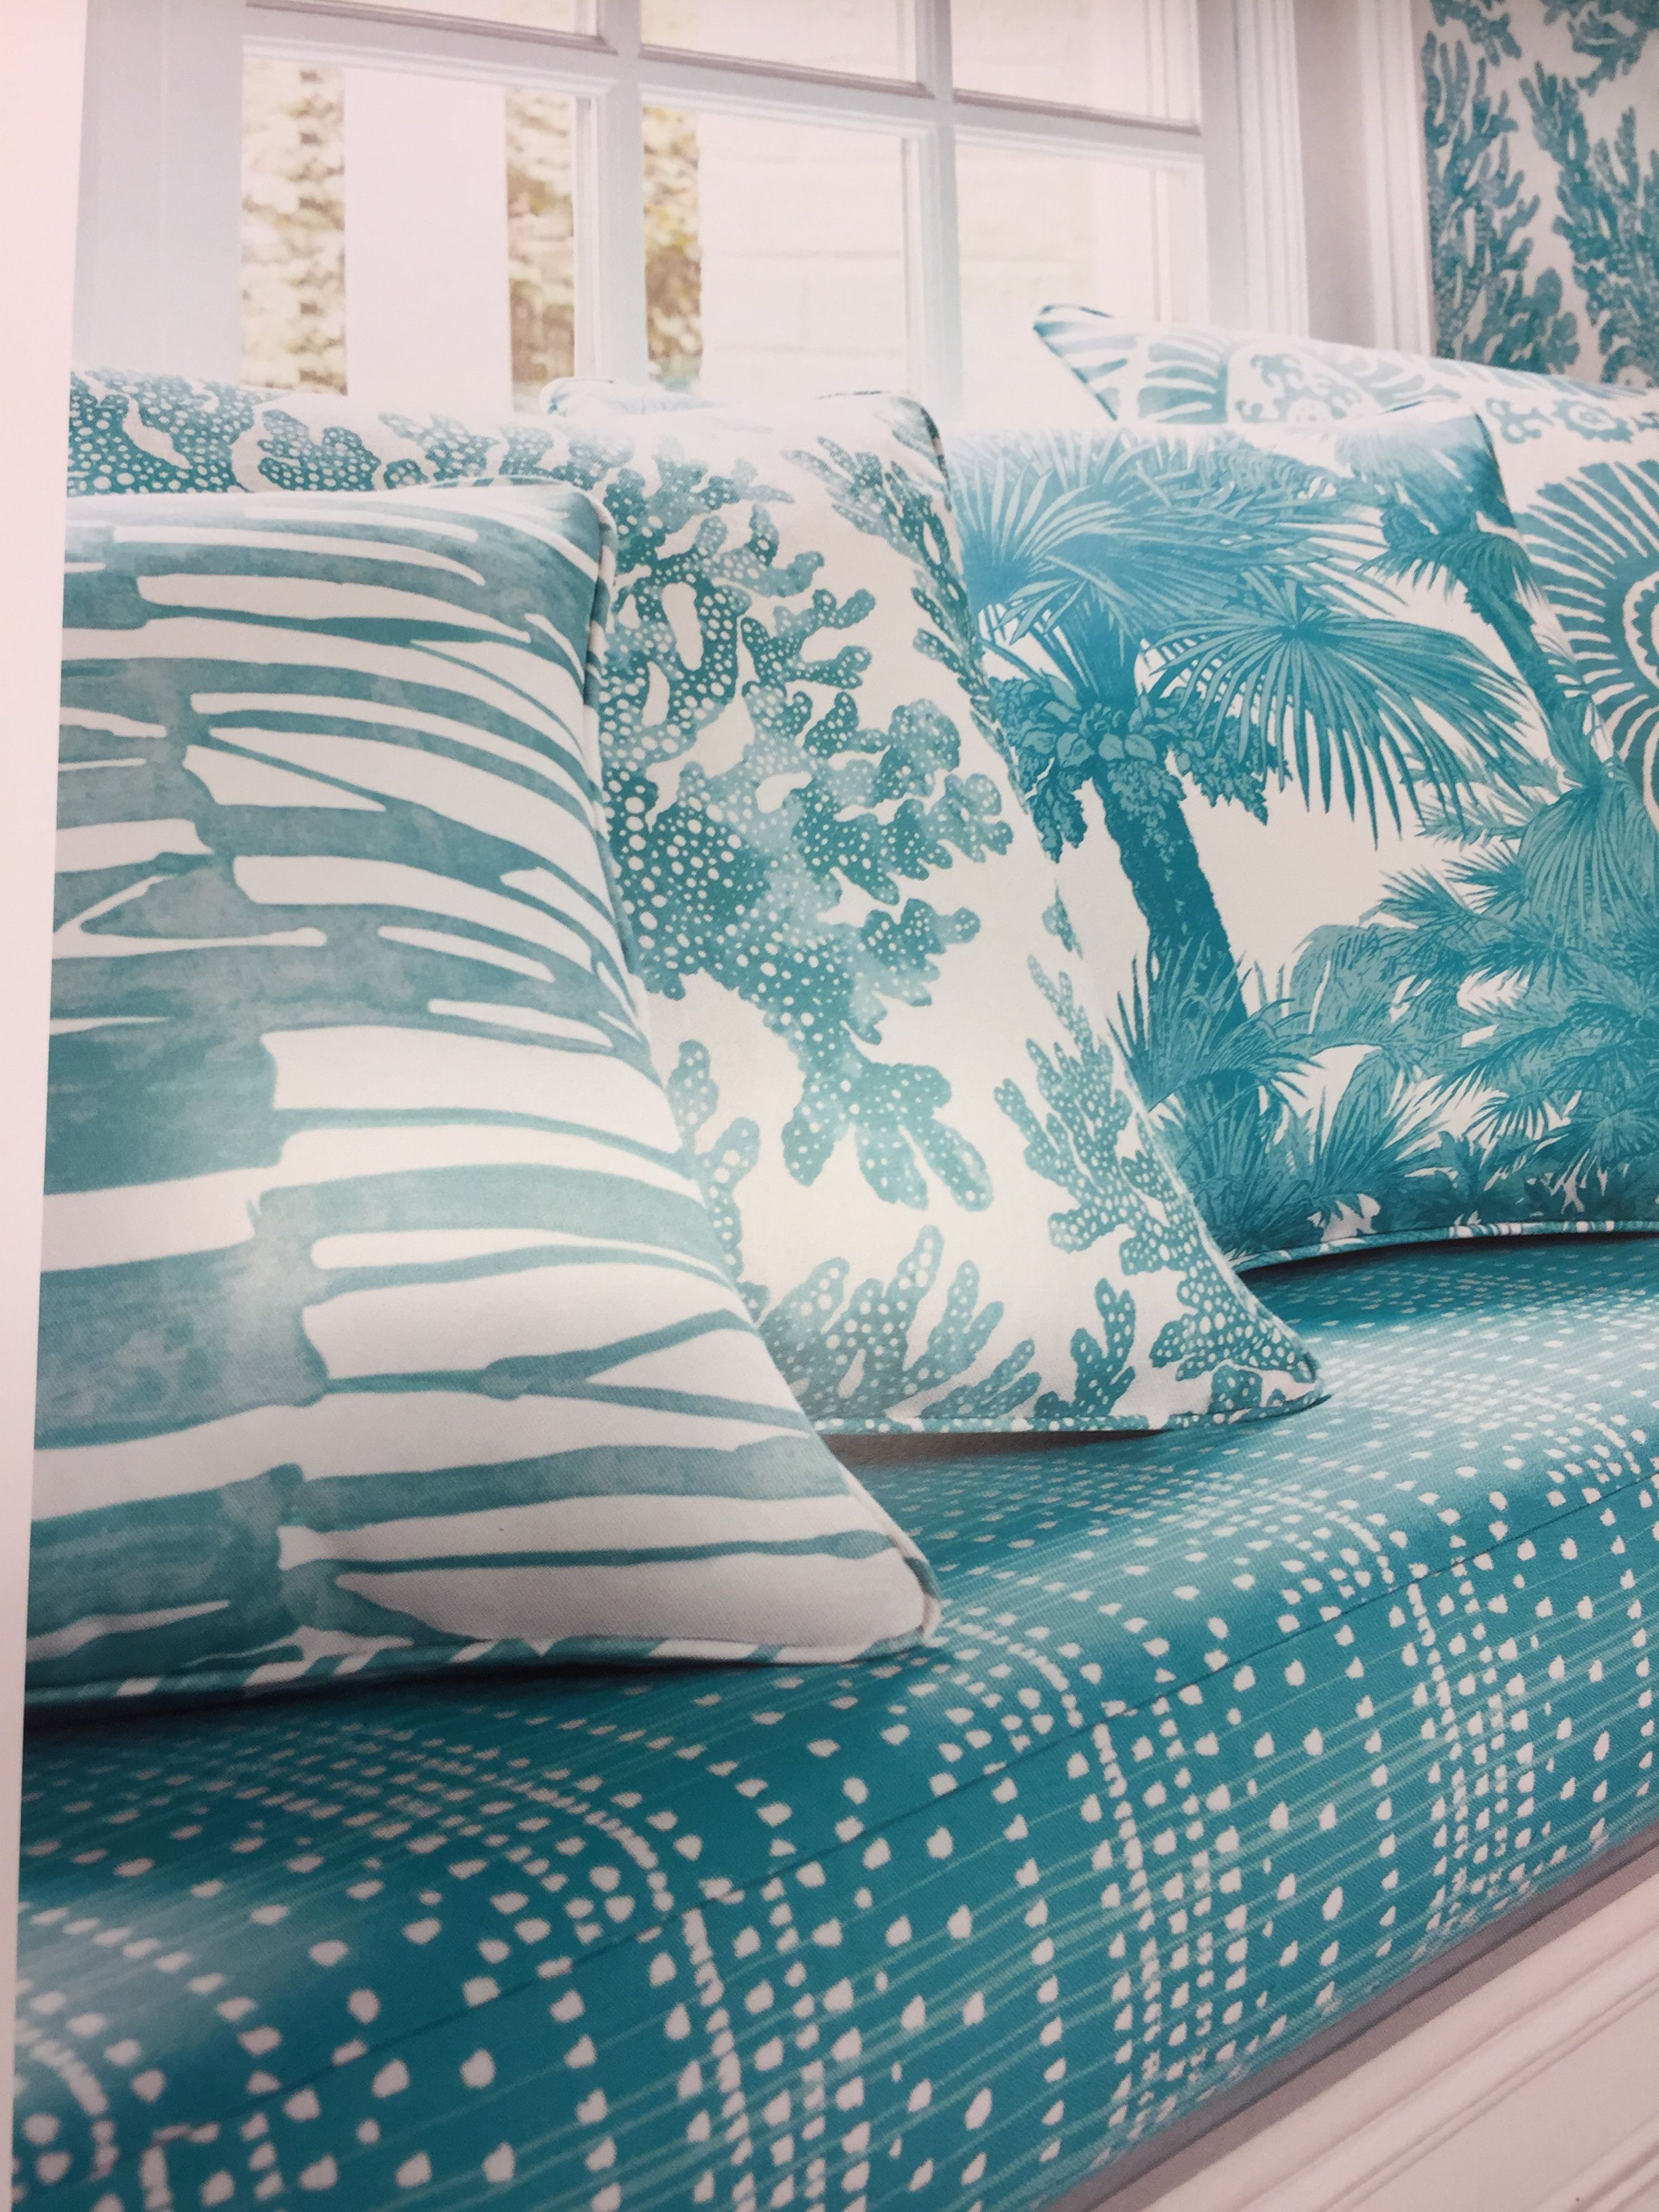 Teal and more! wallpaper and matching fabrics.Always visit a local independent design company